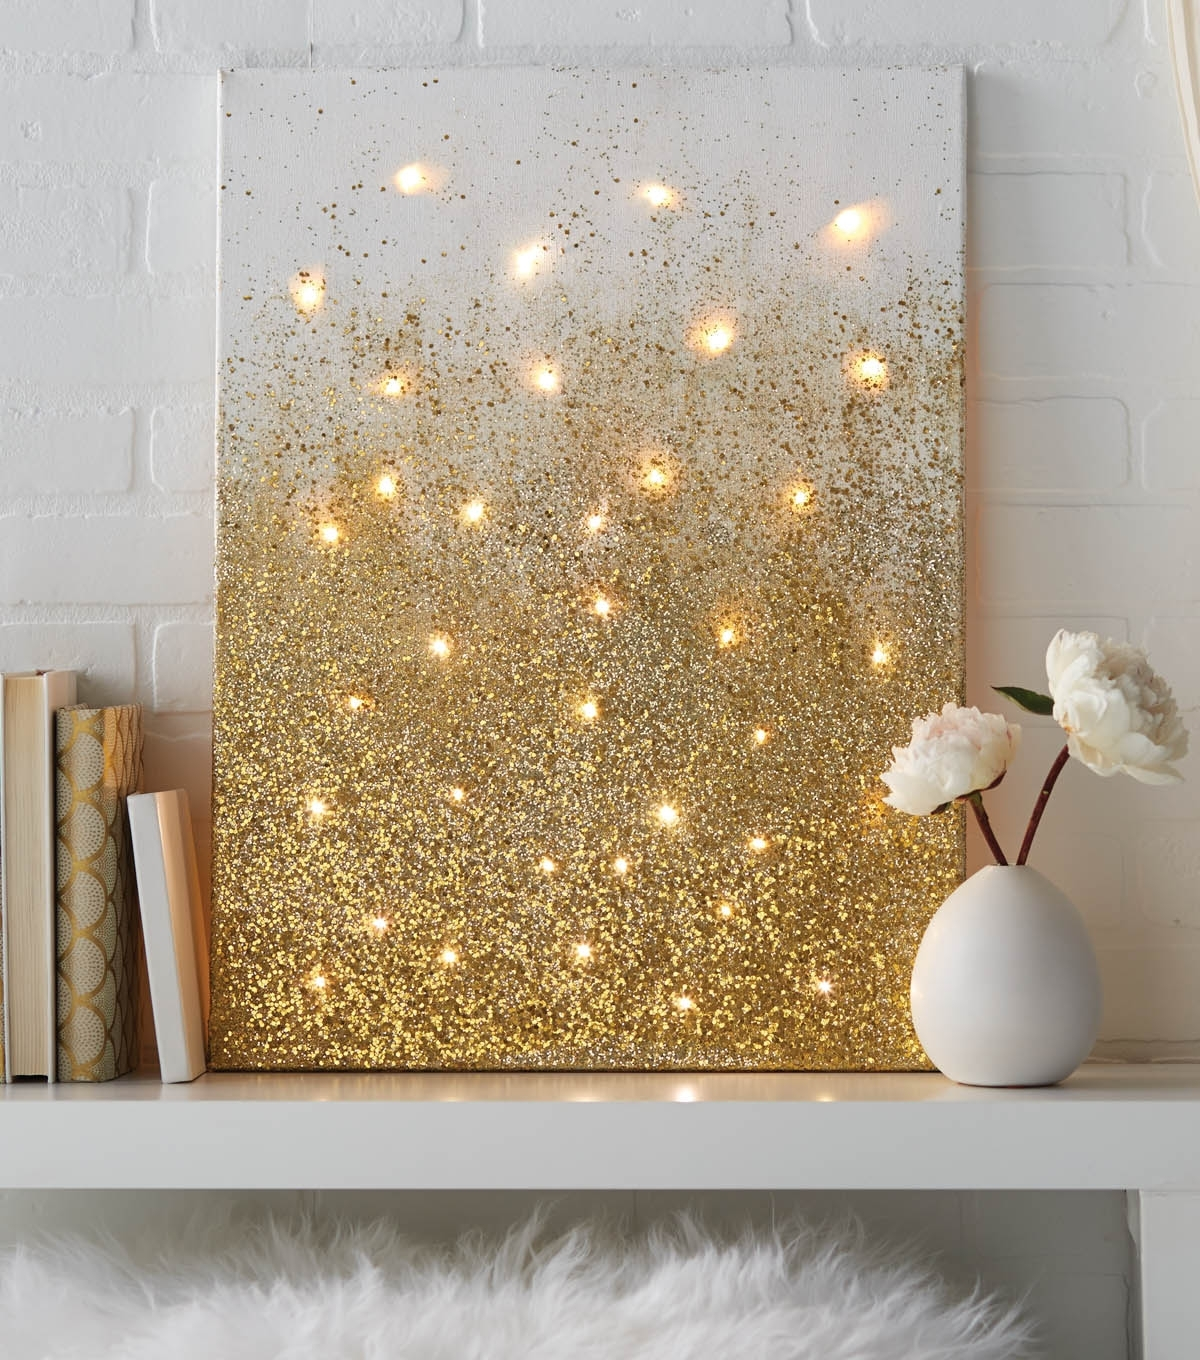 Glitter And Lights Canvas | Joann With Regard To 2018 Joann Fabric Wall Art (Gallery 12 of 15)